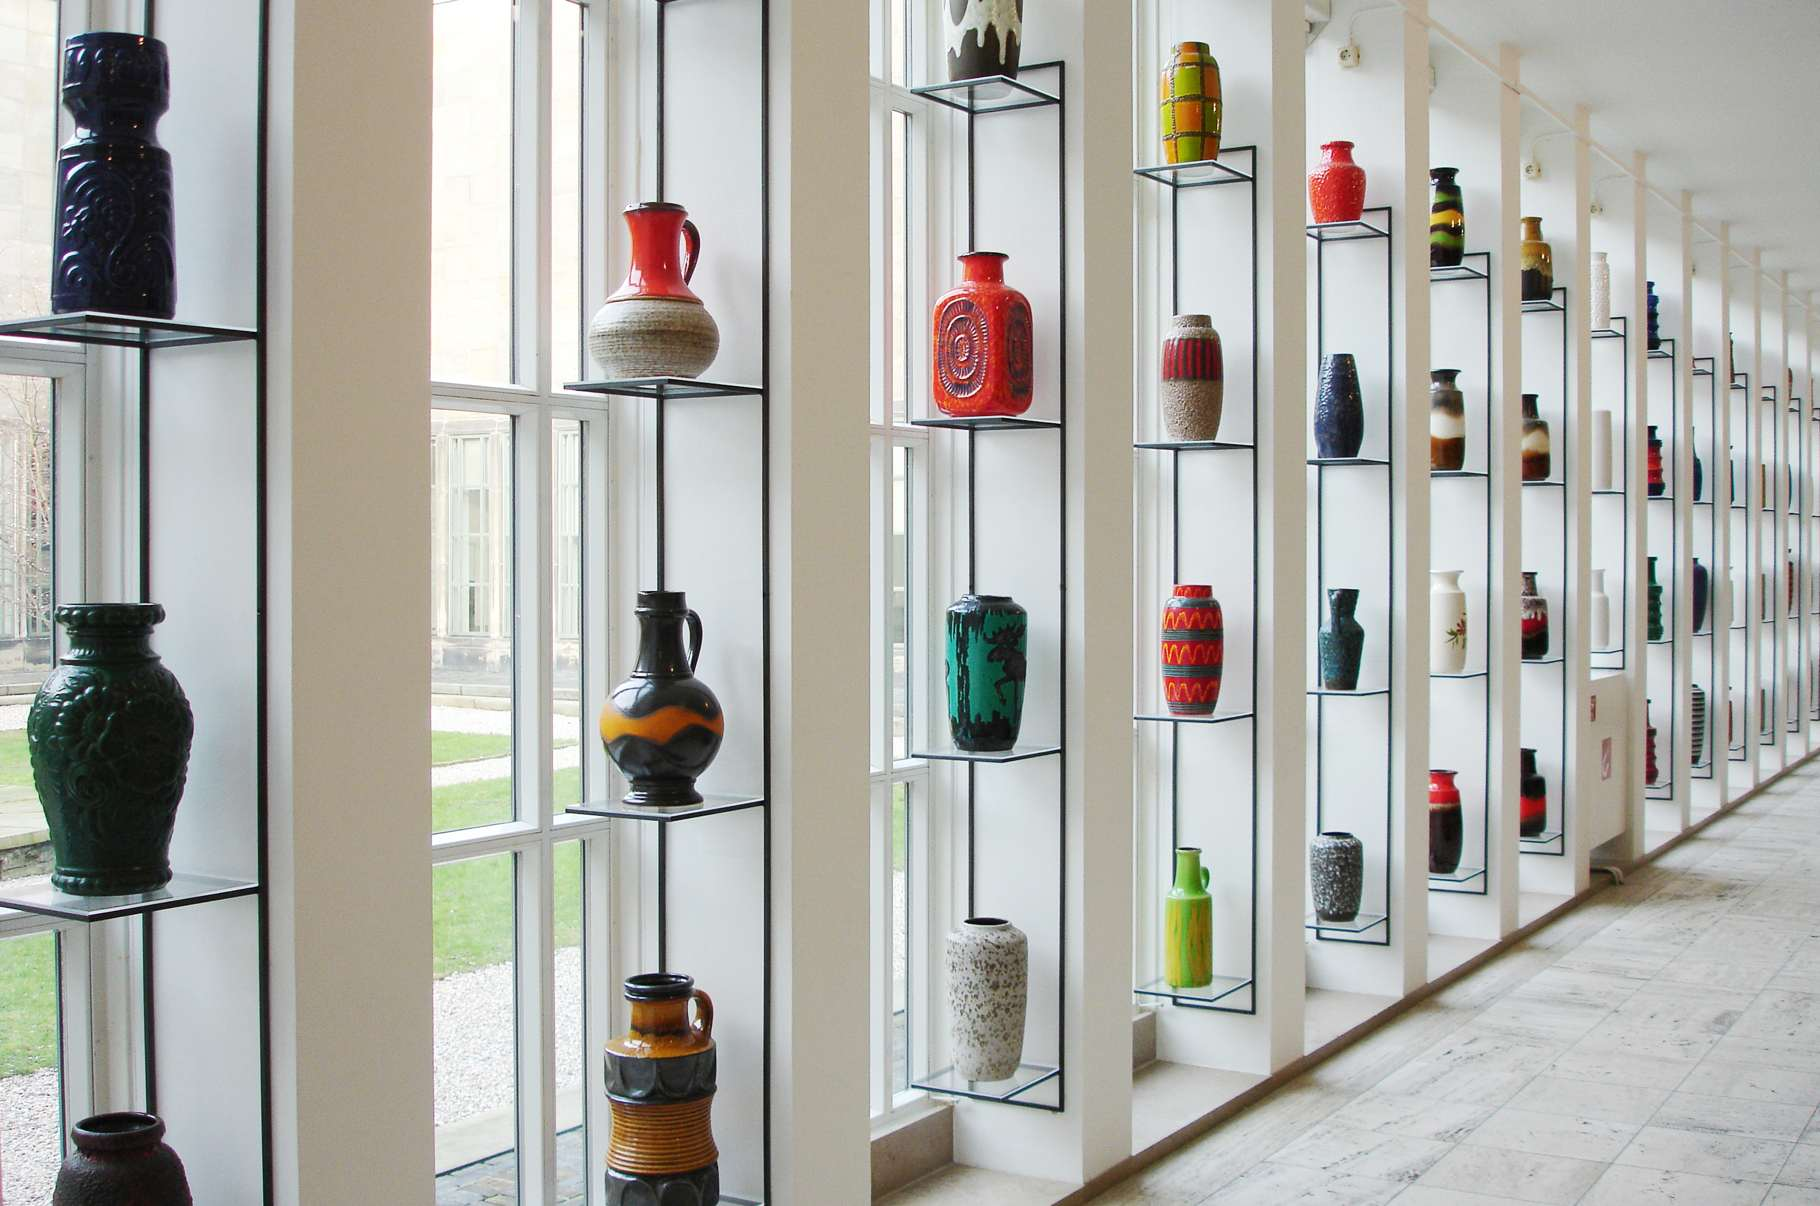 2017-intervention-vases-boijmans-01